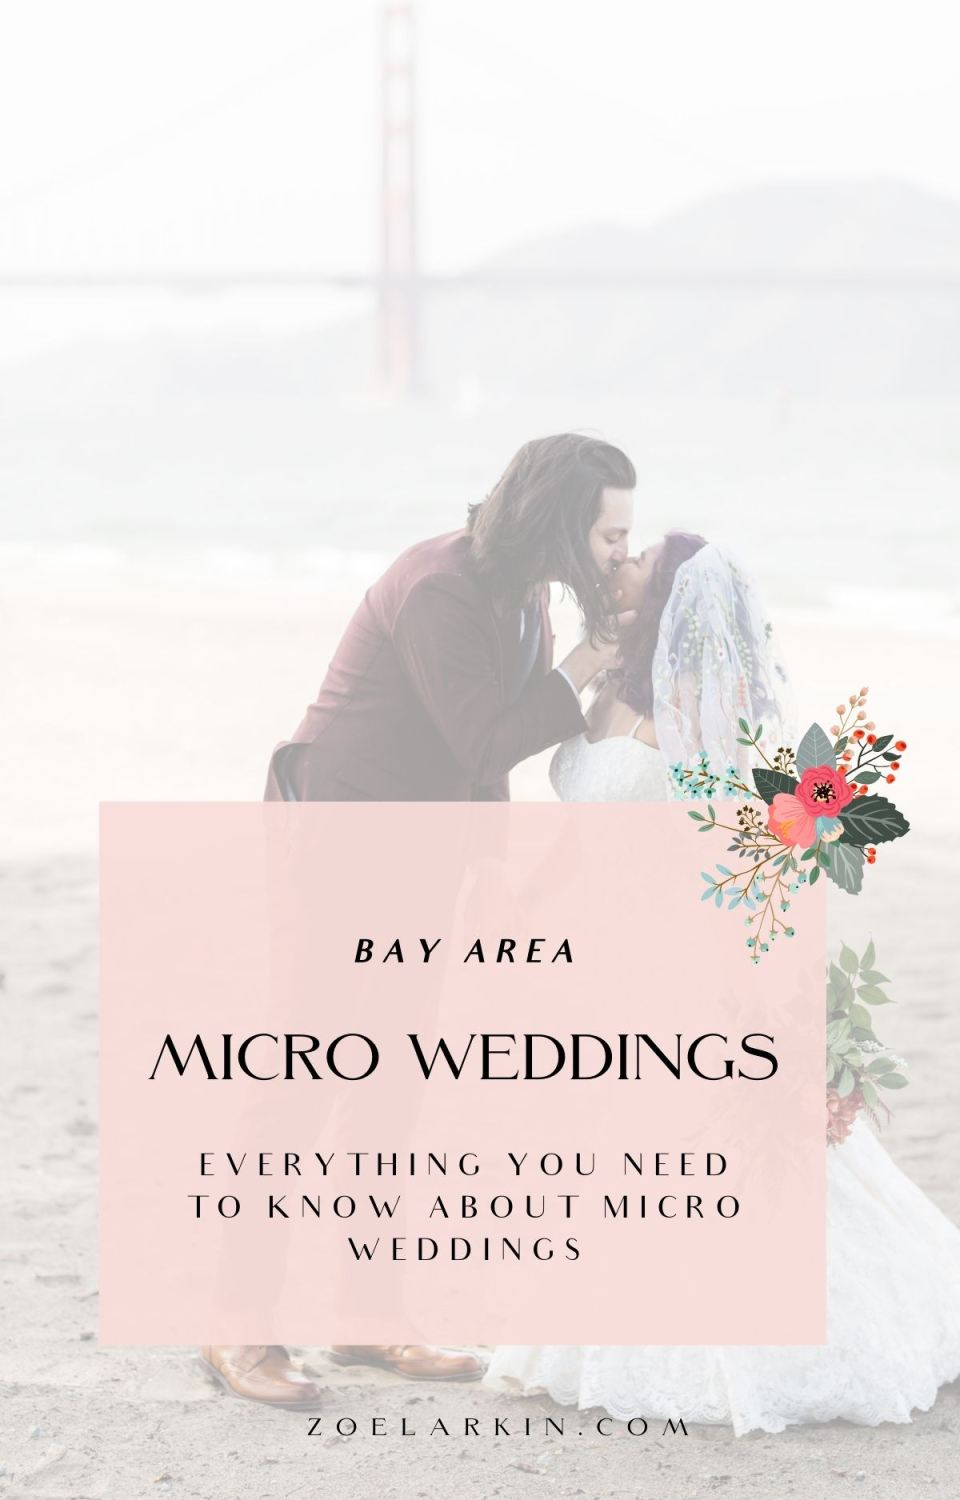 A micro wedding is a small, intentional wedding that may retain aspects of a traditional wedding celebration - just on a smaller scale. A micro wedding typically has fewer than 50 guests, and may therefore be the more frugal choice. If you're trying to decide whether a micro wedding is for you - I can help! Whether it's intimate wedding, mini mony, sequel wedding or micro wedding, I help shed light not only on what it all means but whether a small wedding is a good fit for you | zoelarkin.com